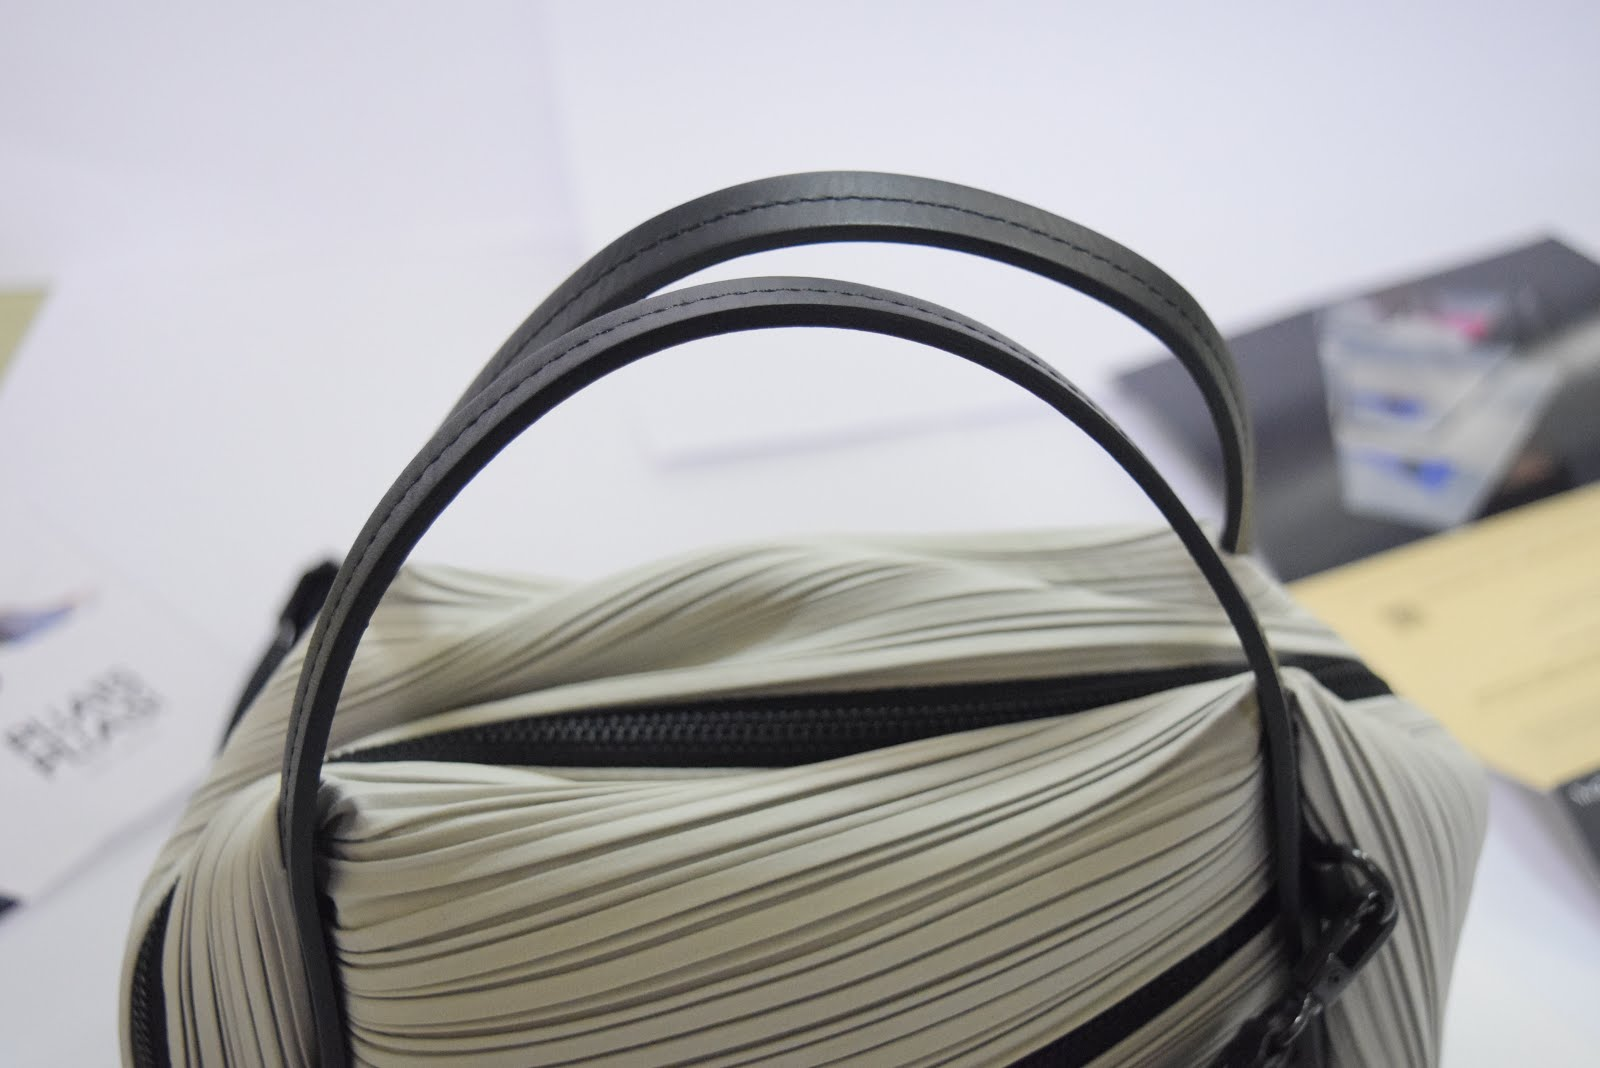 d6384f8e23 Pleats Please Issey Miyake Bias Sling Bag Review